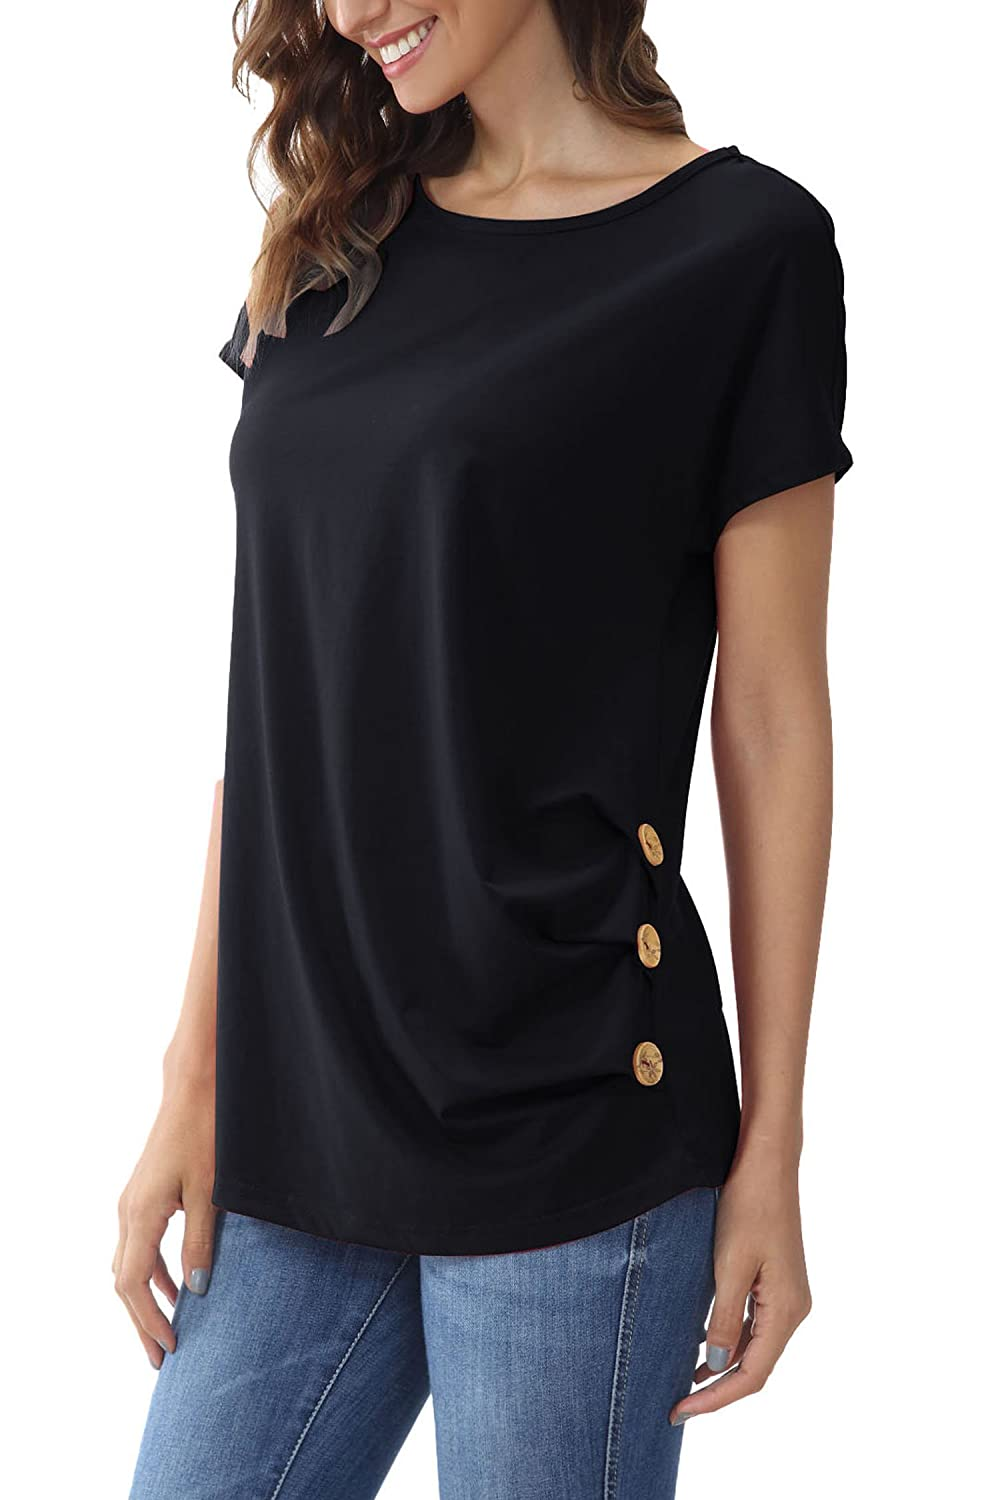 0b434d2af Material:60%polyester, 35% Cotton, 5% Spandex,soft, lightweight,skin touch.  Pull On closure. Features: short sleeve t shirt, scoop neck tee top, button  down ...